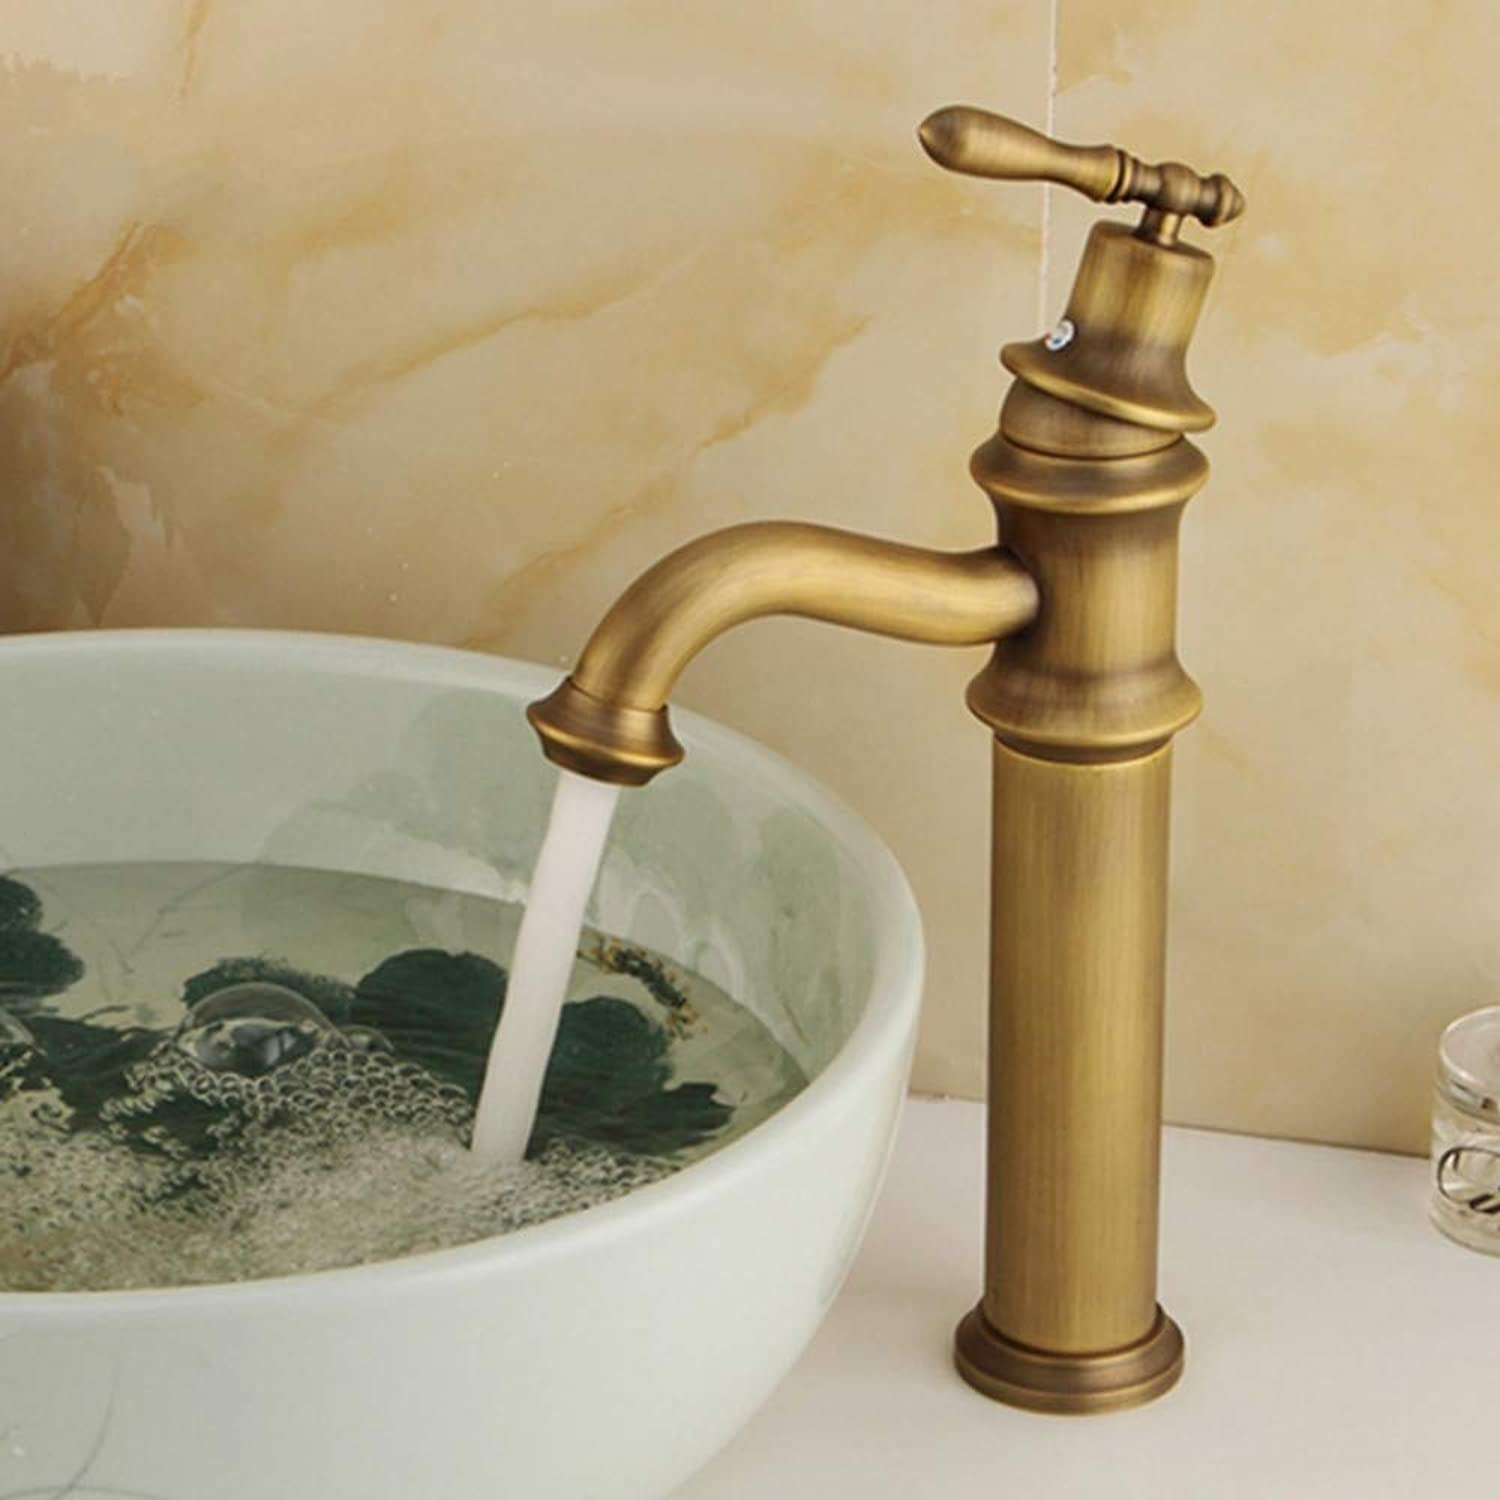 Lddpl Basin Faucets Hot and Cold Tap Antique Brass Mixer Solid Copper Deck Mounted Sink Faucet Bathroom s Y10068